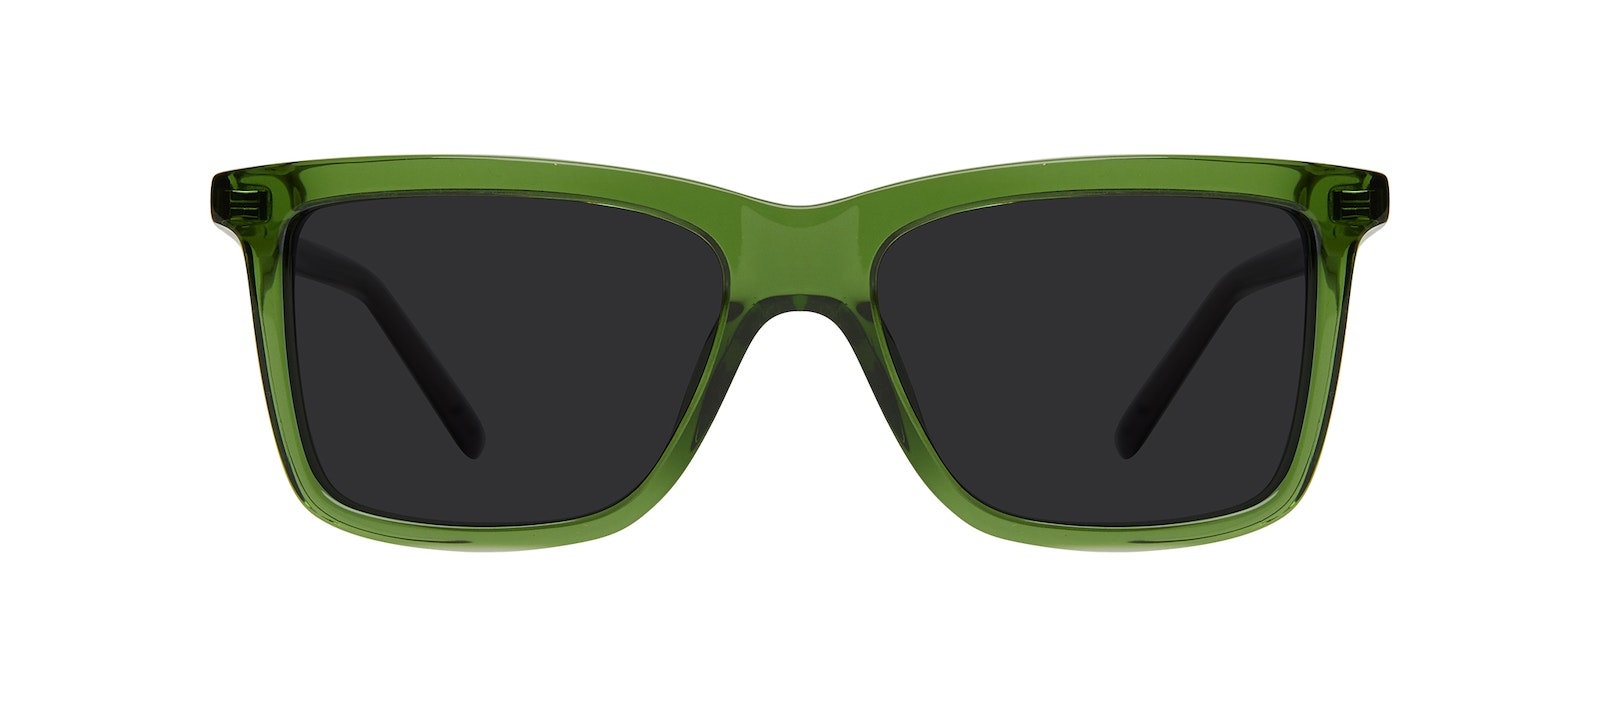 Affordable Fashion Glasses Square Sunglasses Kids Elite Junior Green Stone Front